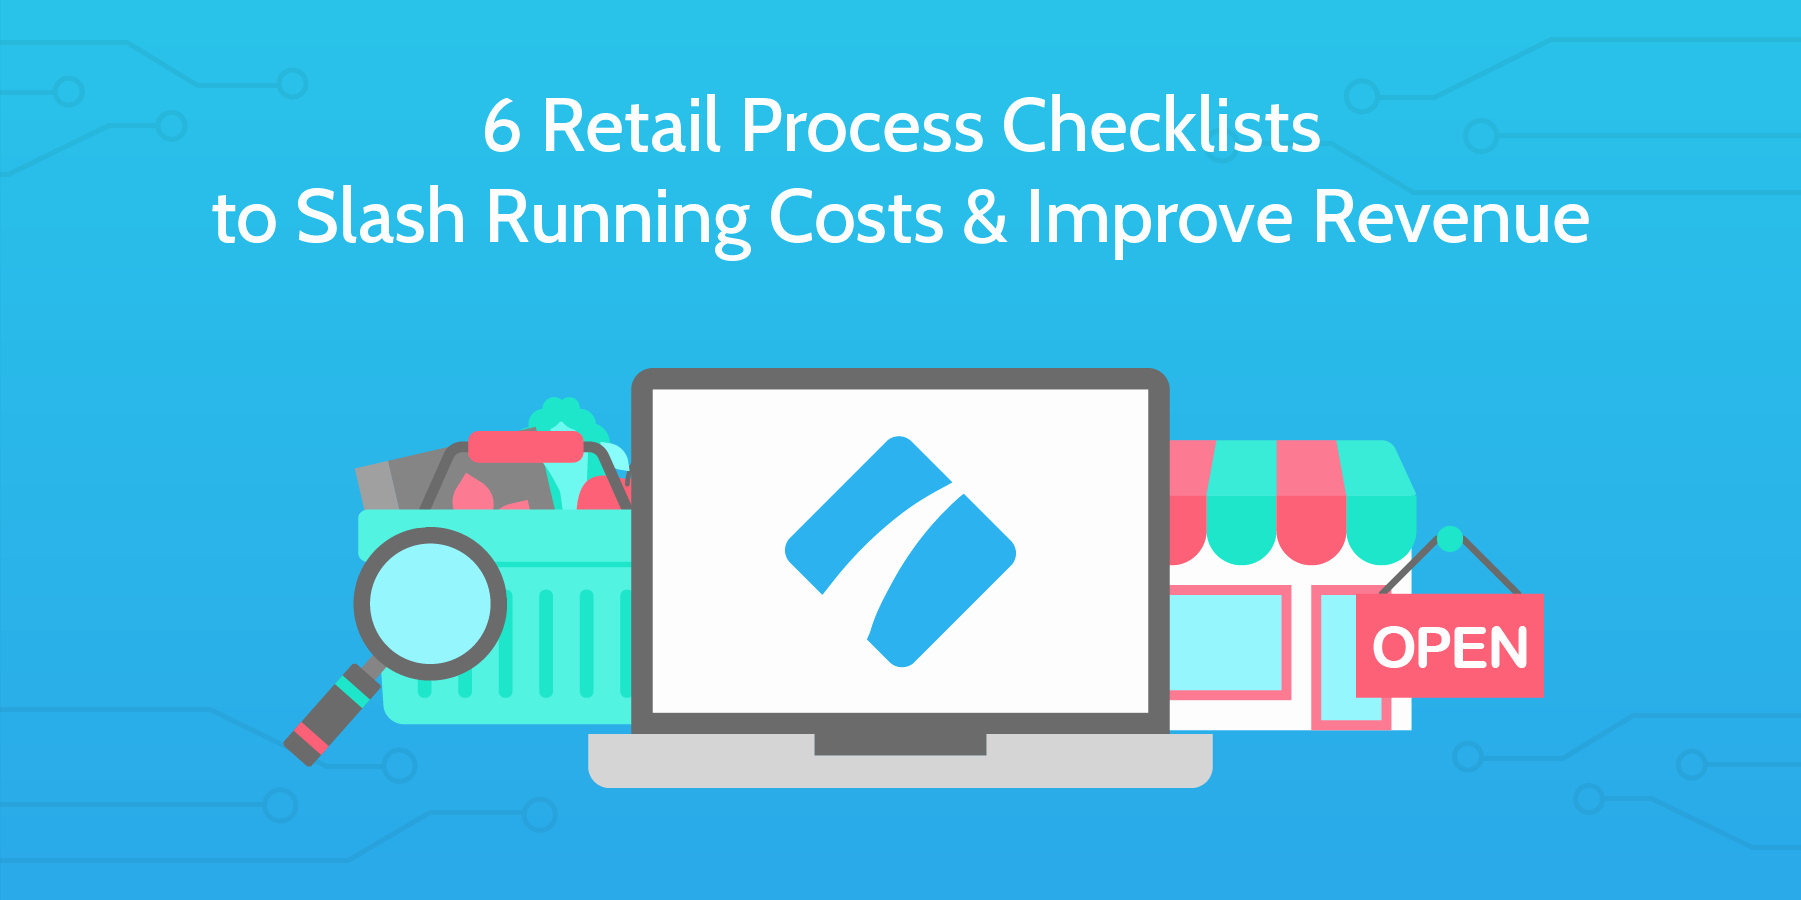 Retail Store Checklist Template Best Of 6 Retail Process Checklists to Slash Running Costs & Improve Revenue